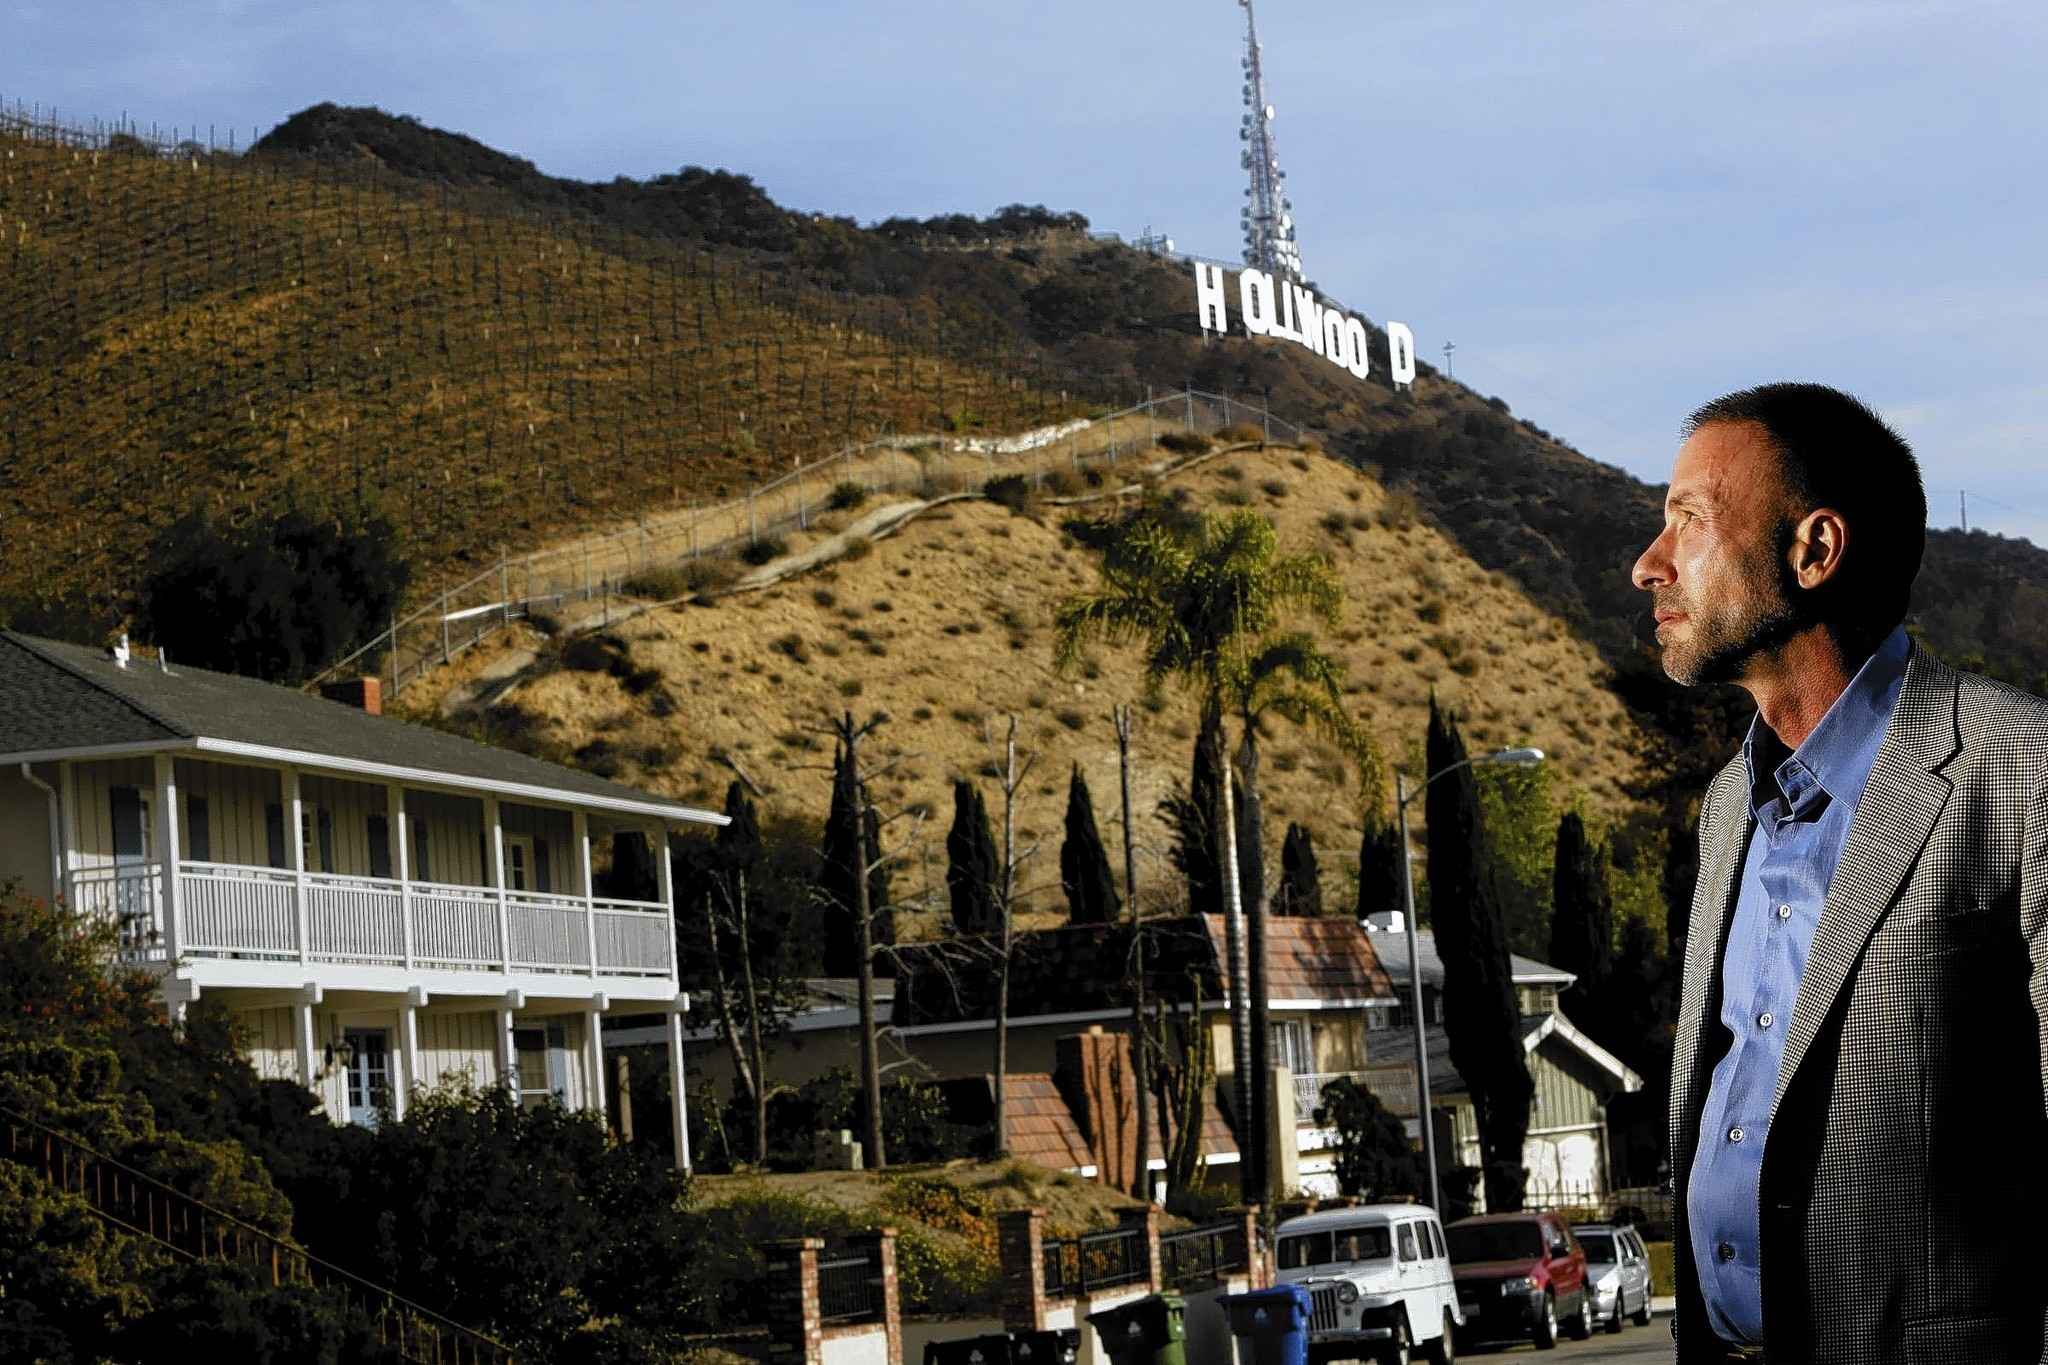 Winemaker's development plans near Hollywood sign produce sour grapes